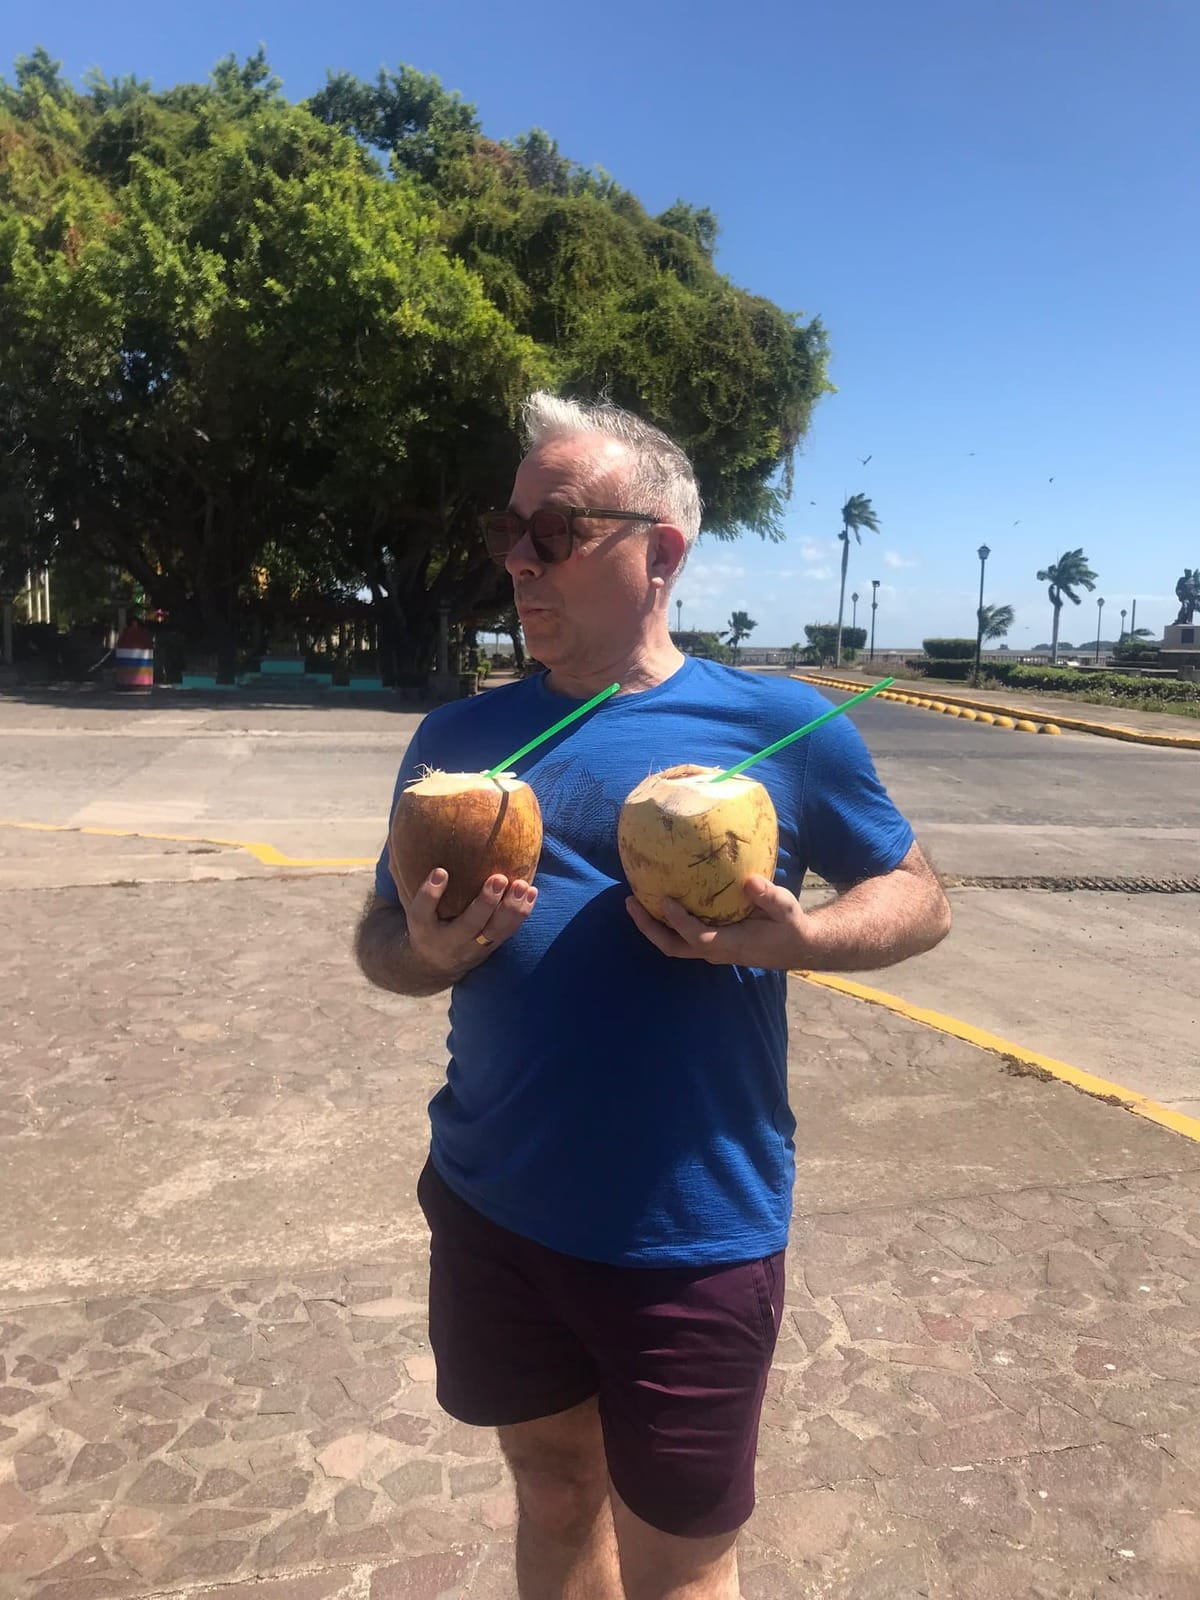 Man with coconuts.